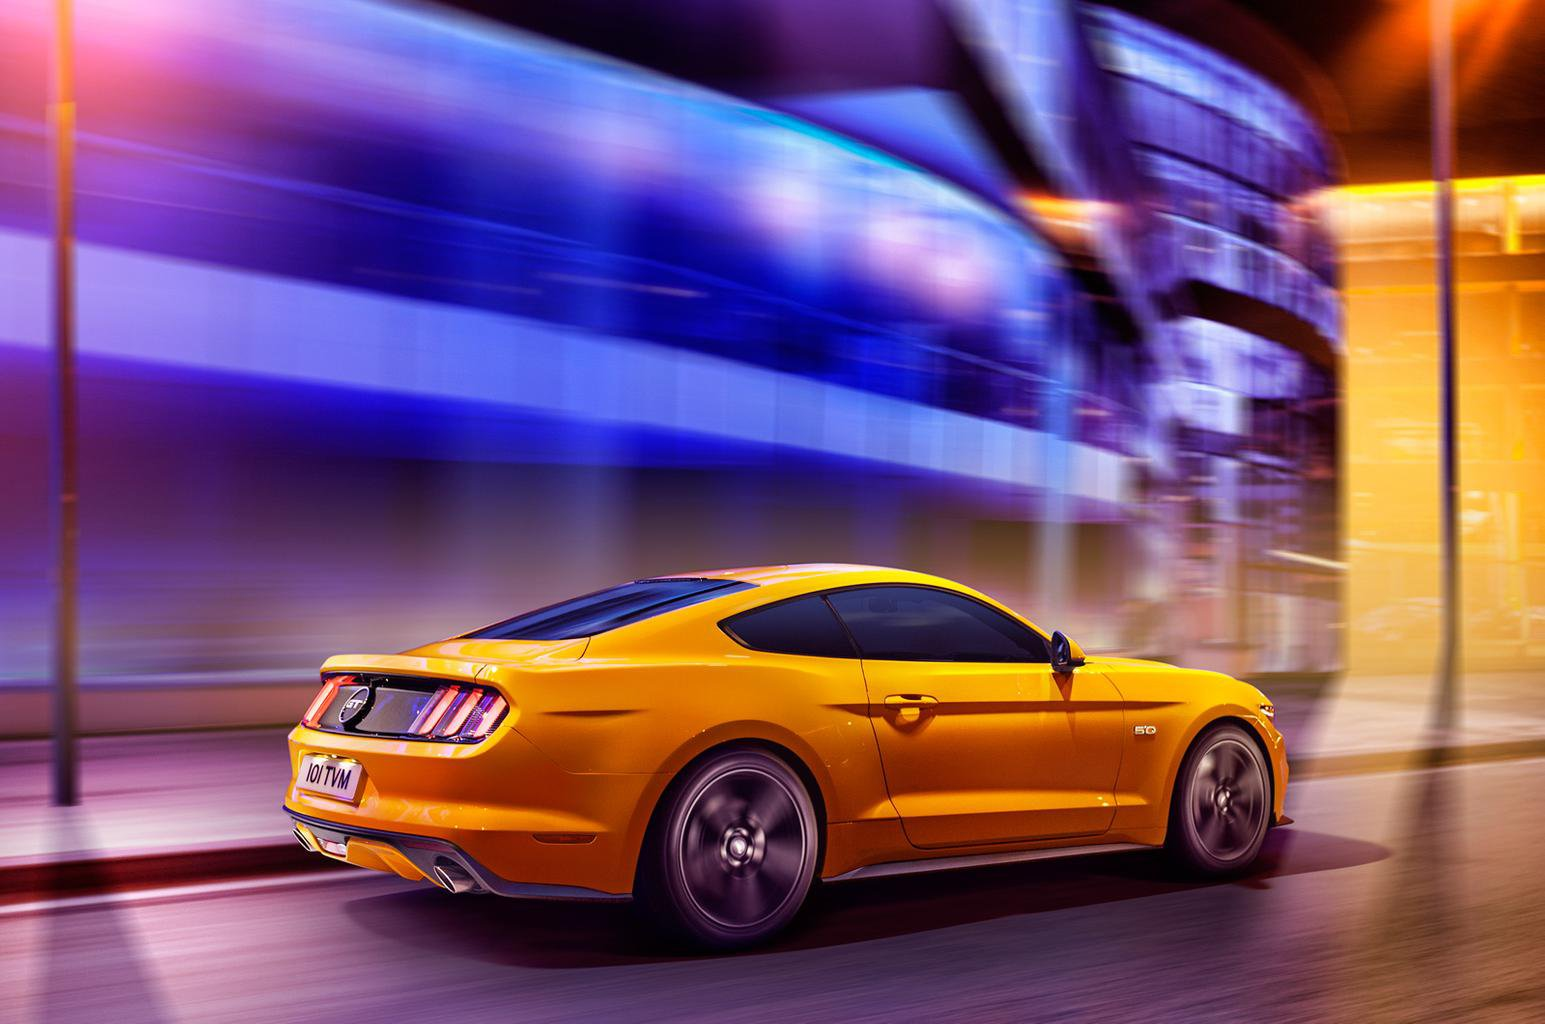 New 2015 Ford Mustang - pricing, on-sale date and engine details